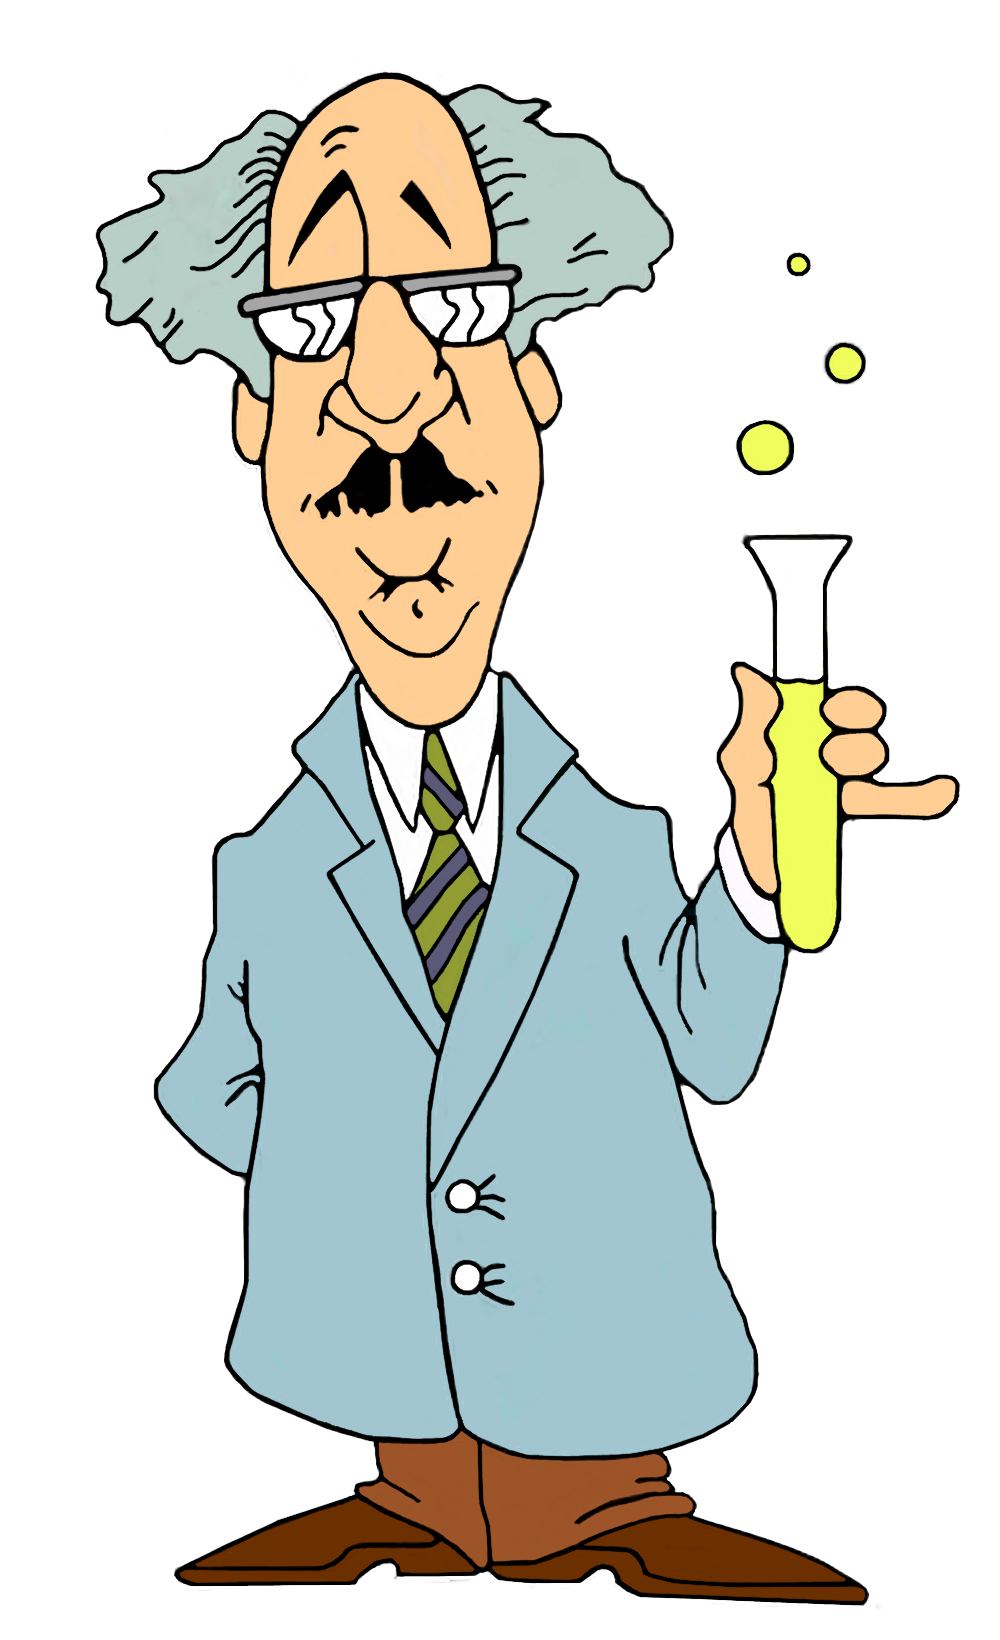 Dude online projects back. Clipart science science project